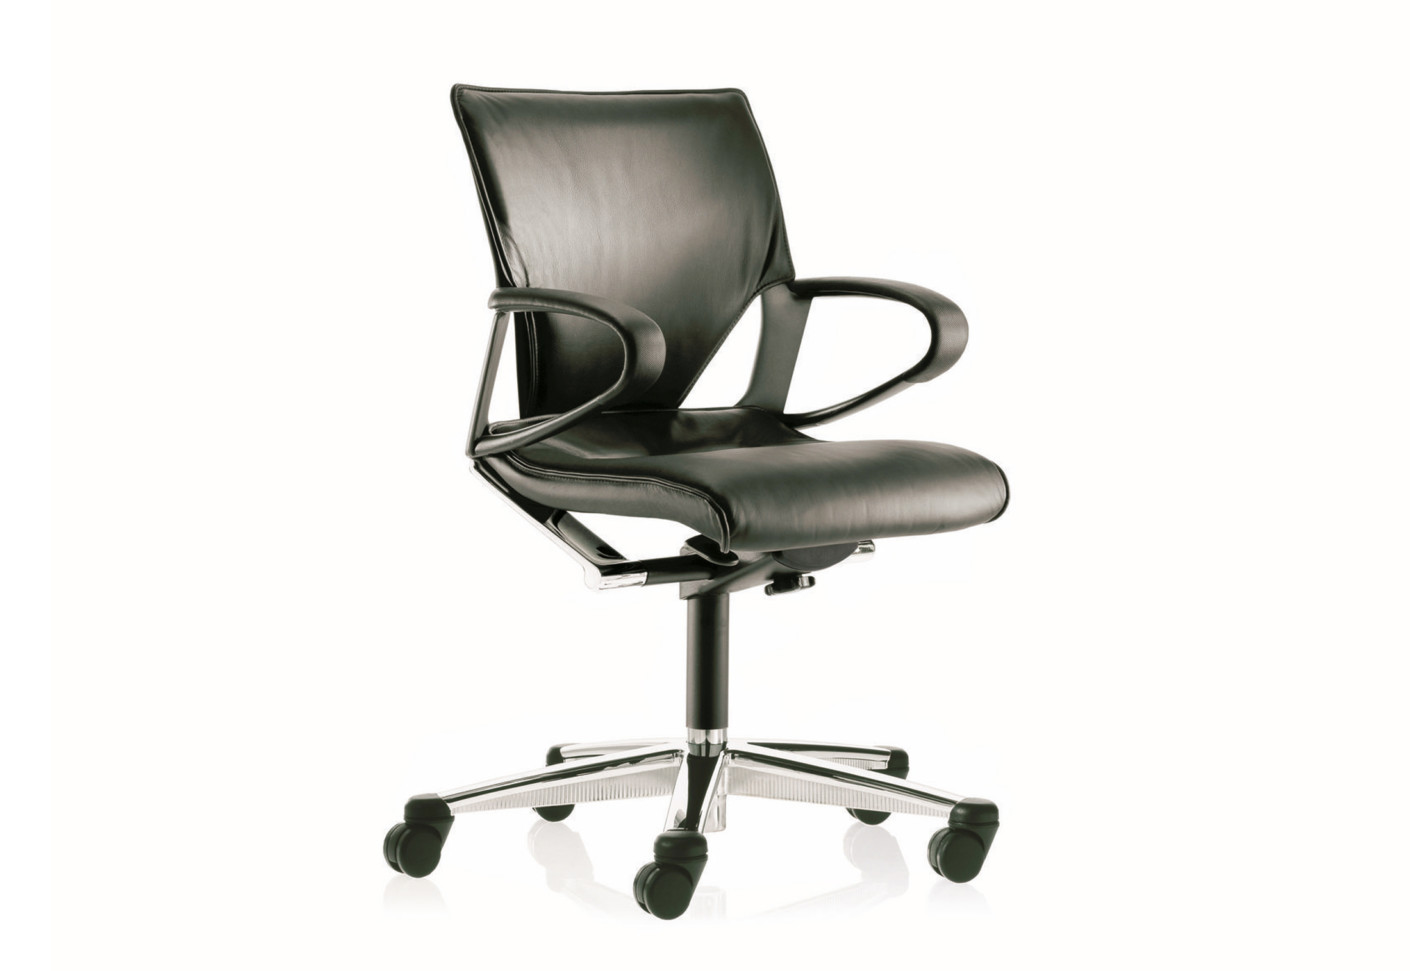 modus executive 283 81 swivel chair by wilkhahn stylepark rh stylepark com